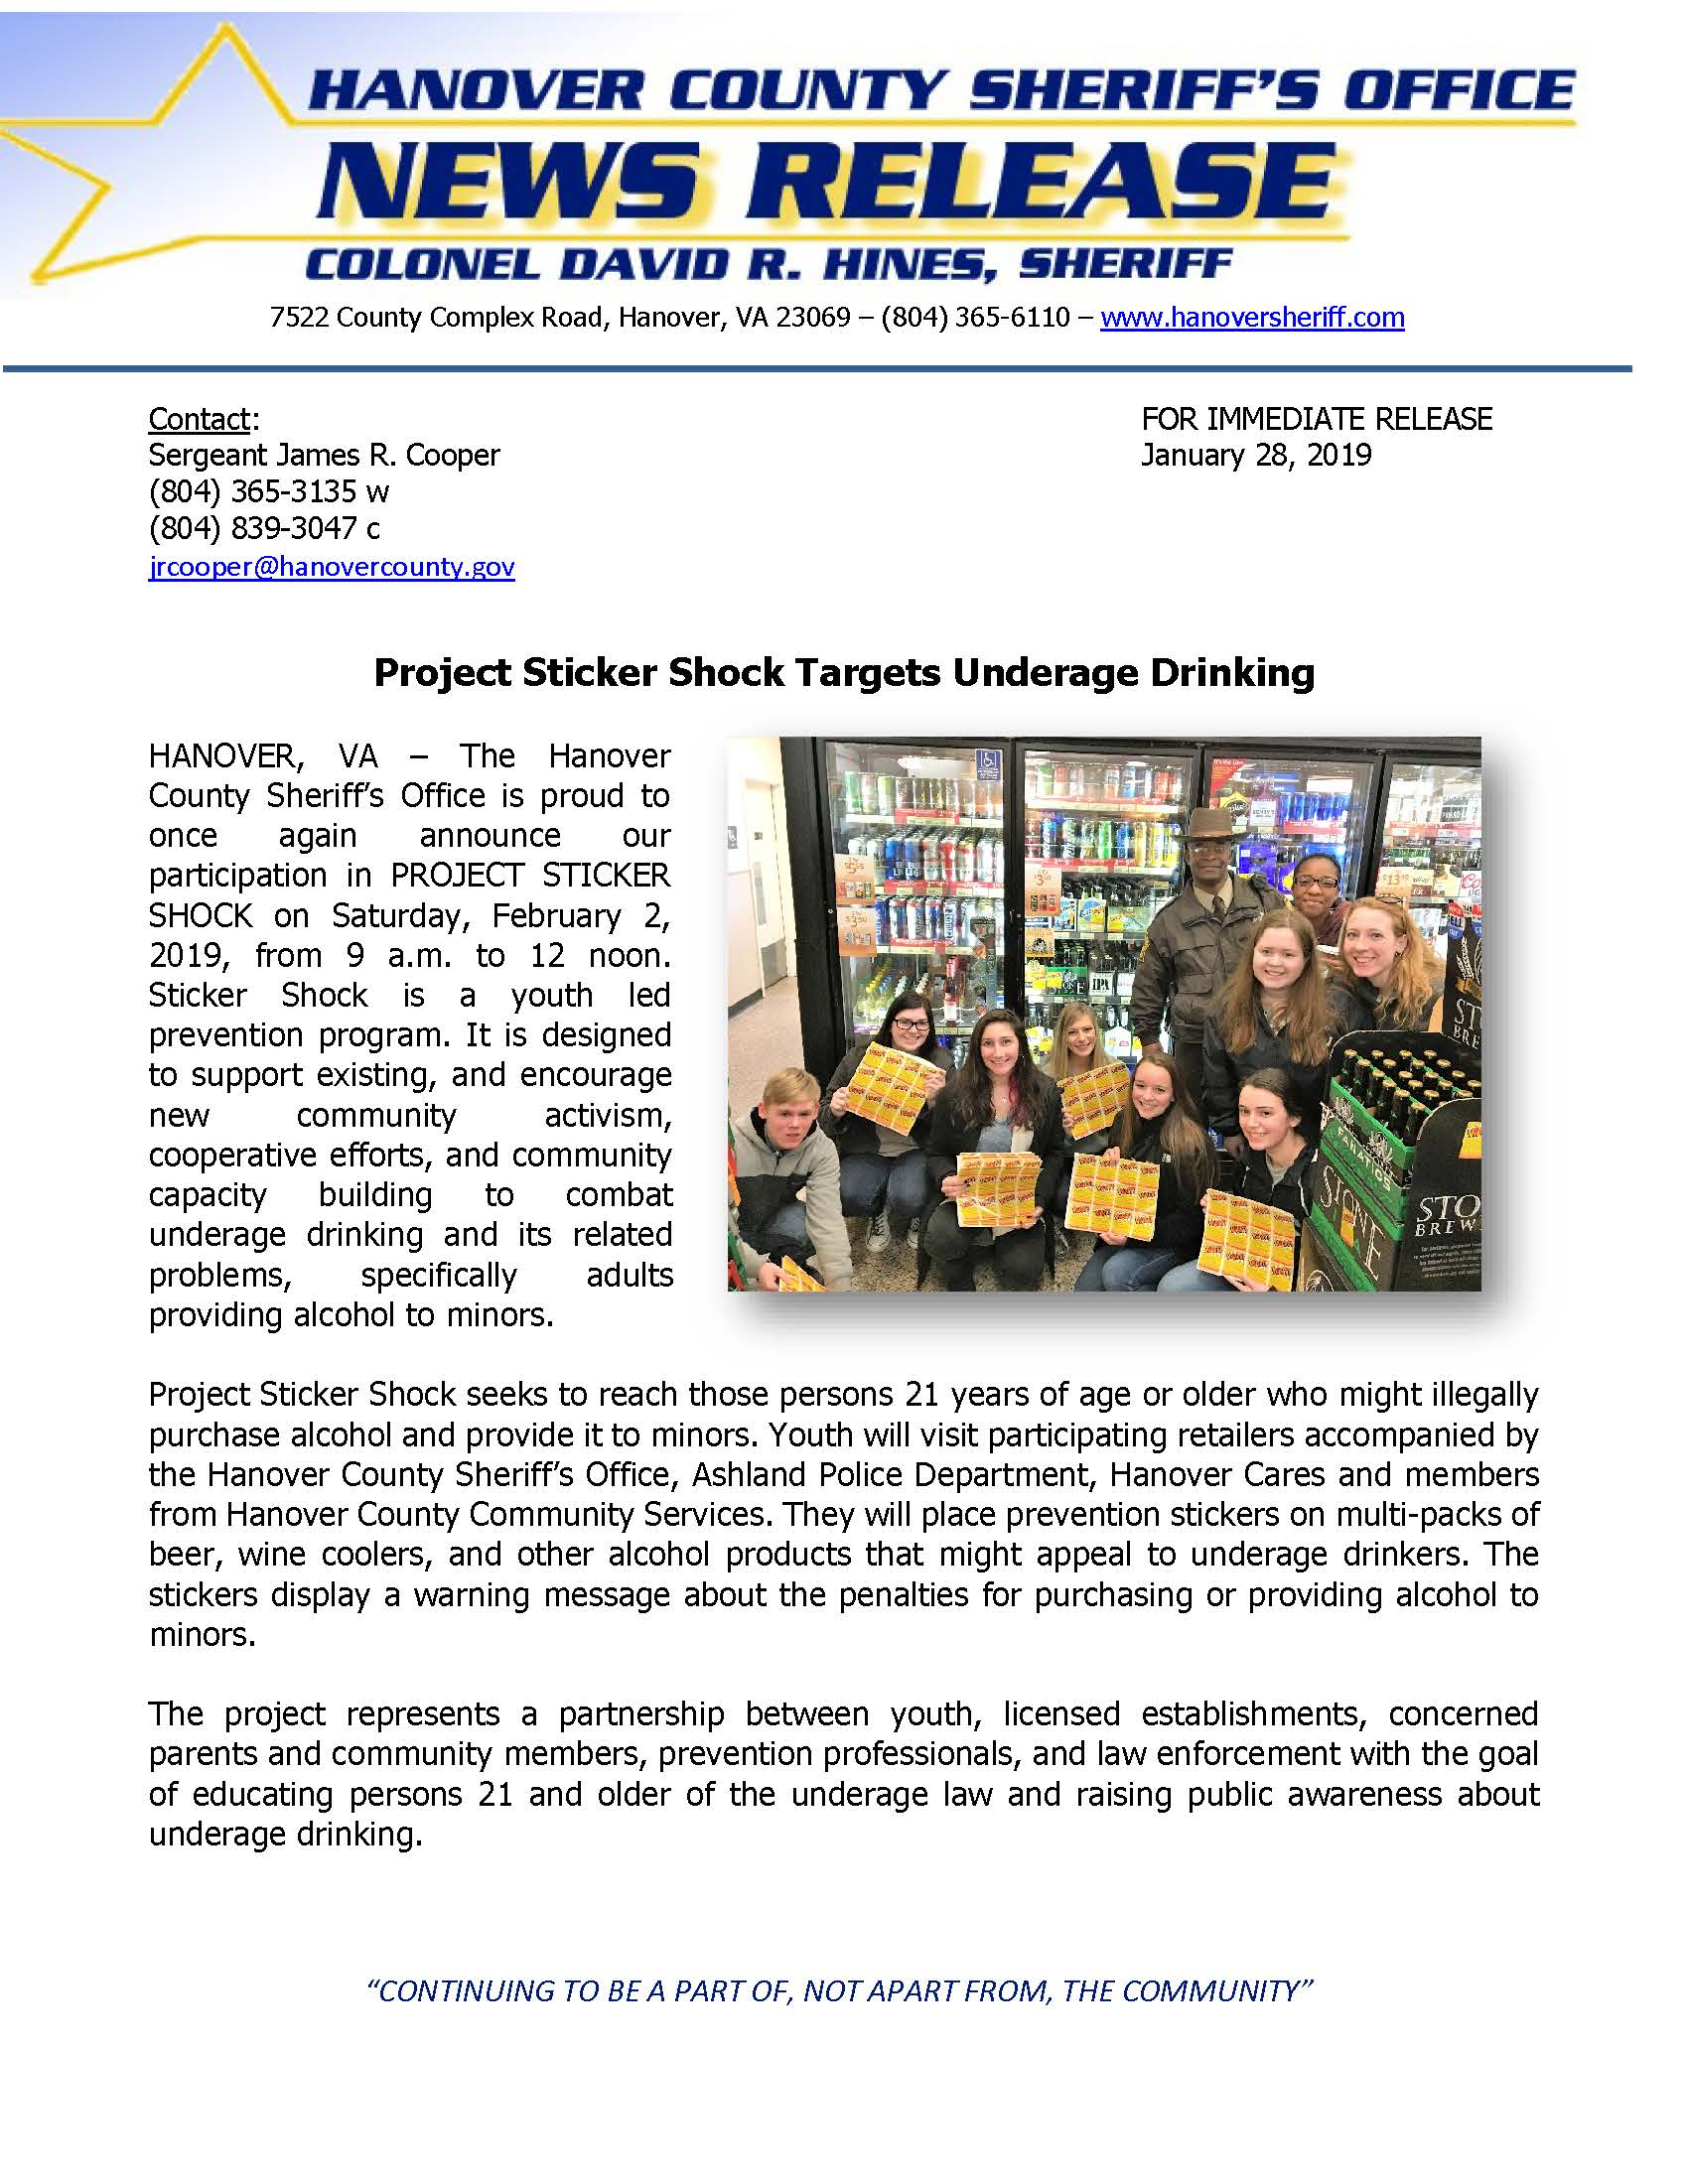 HCSO- Project Sticker Shock 2019_Page_1